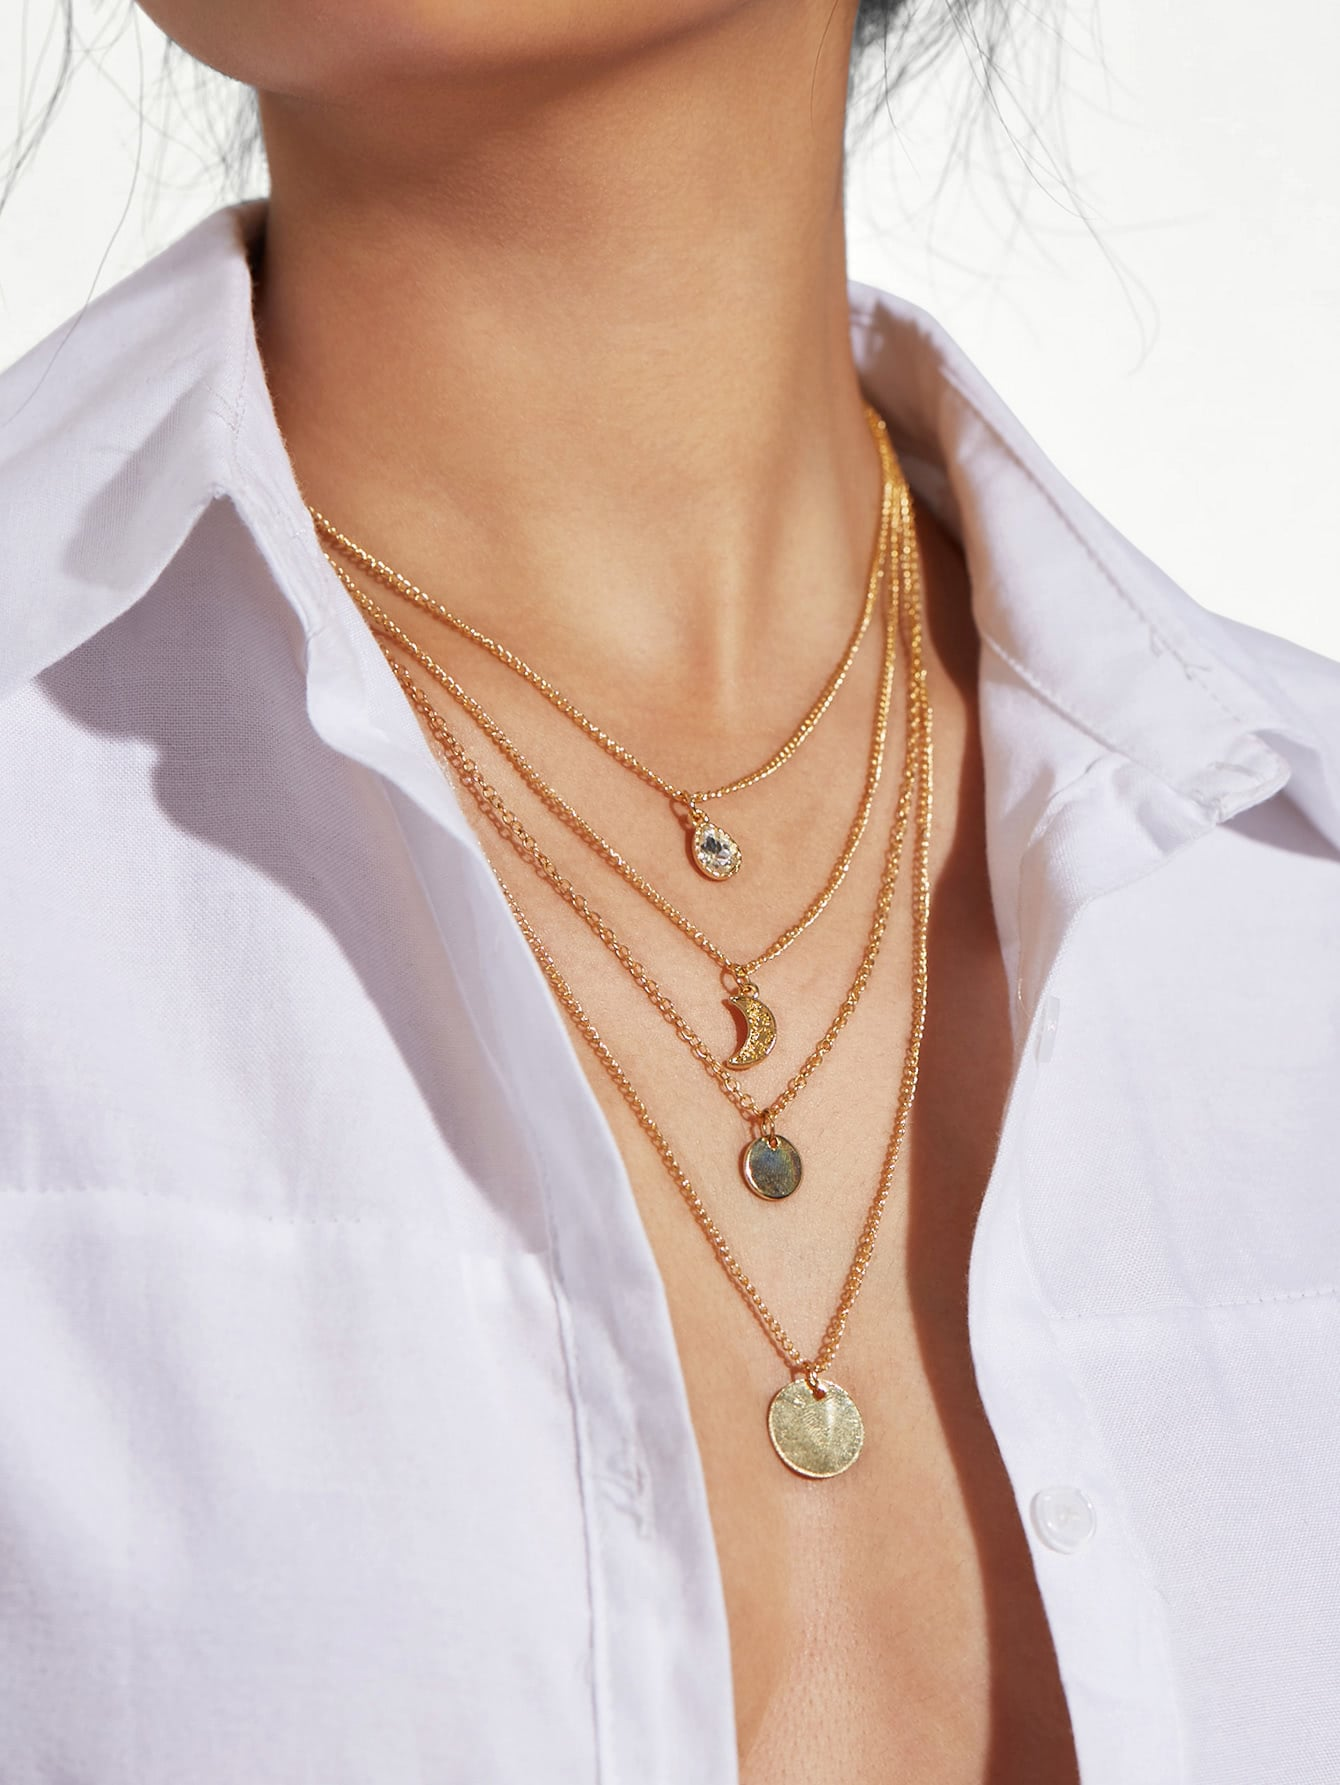 Moon & Sequin Pendant Layered Chain Necklace